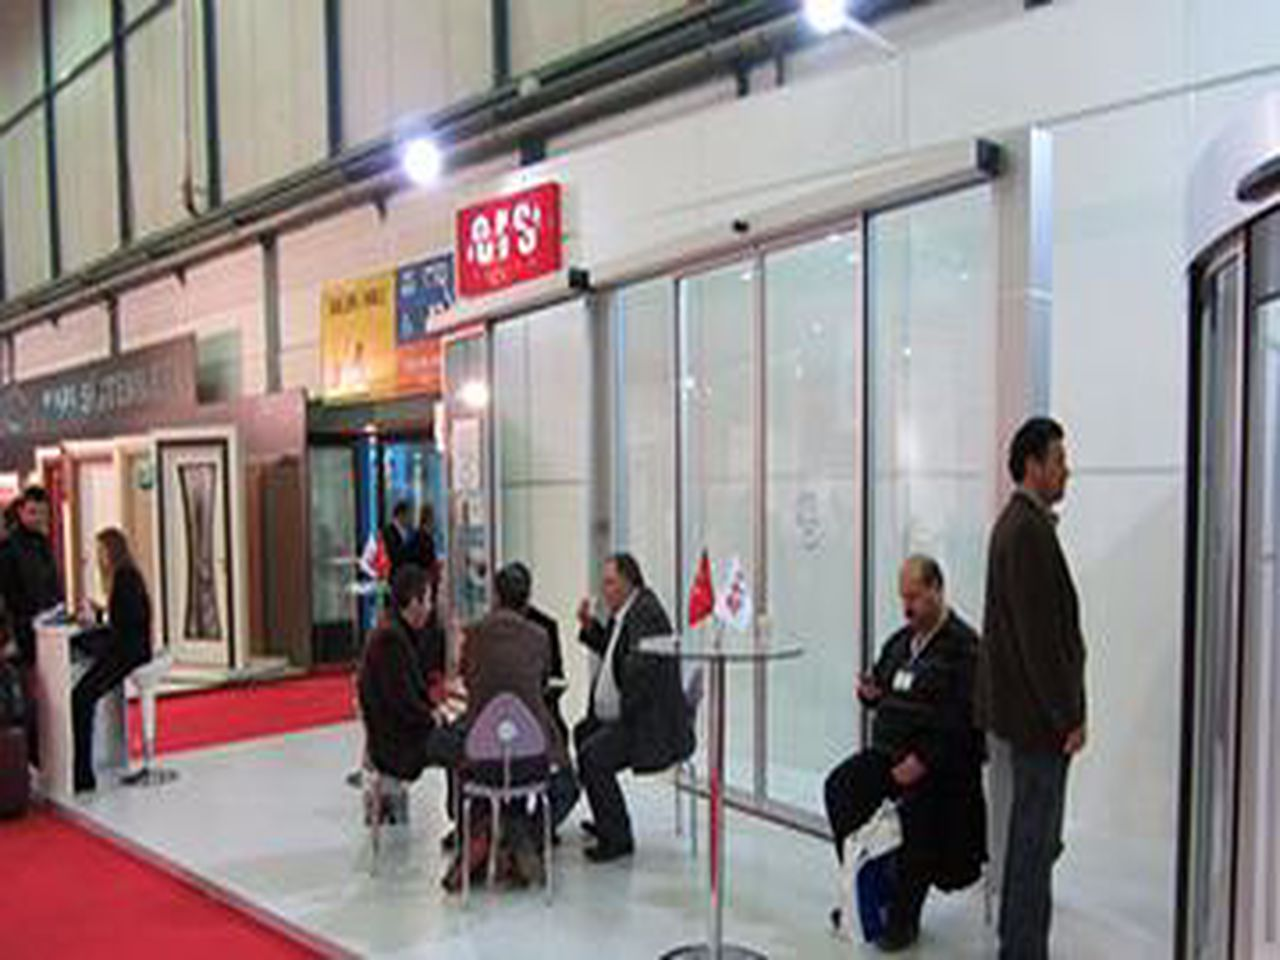 We were at the 2012 Istanbul TUYAP Door Fair.